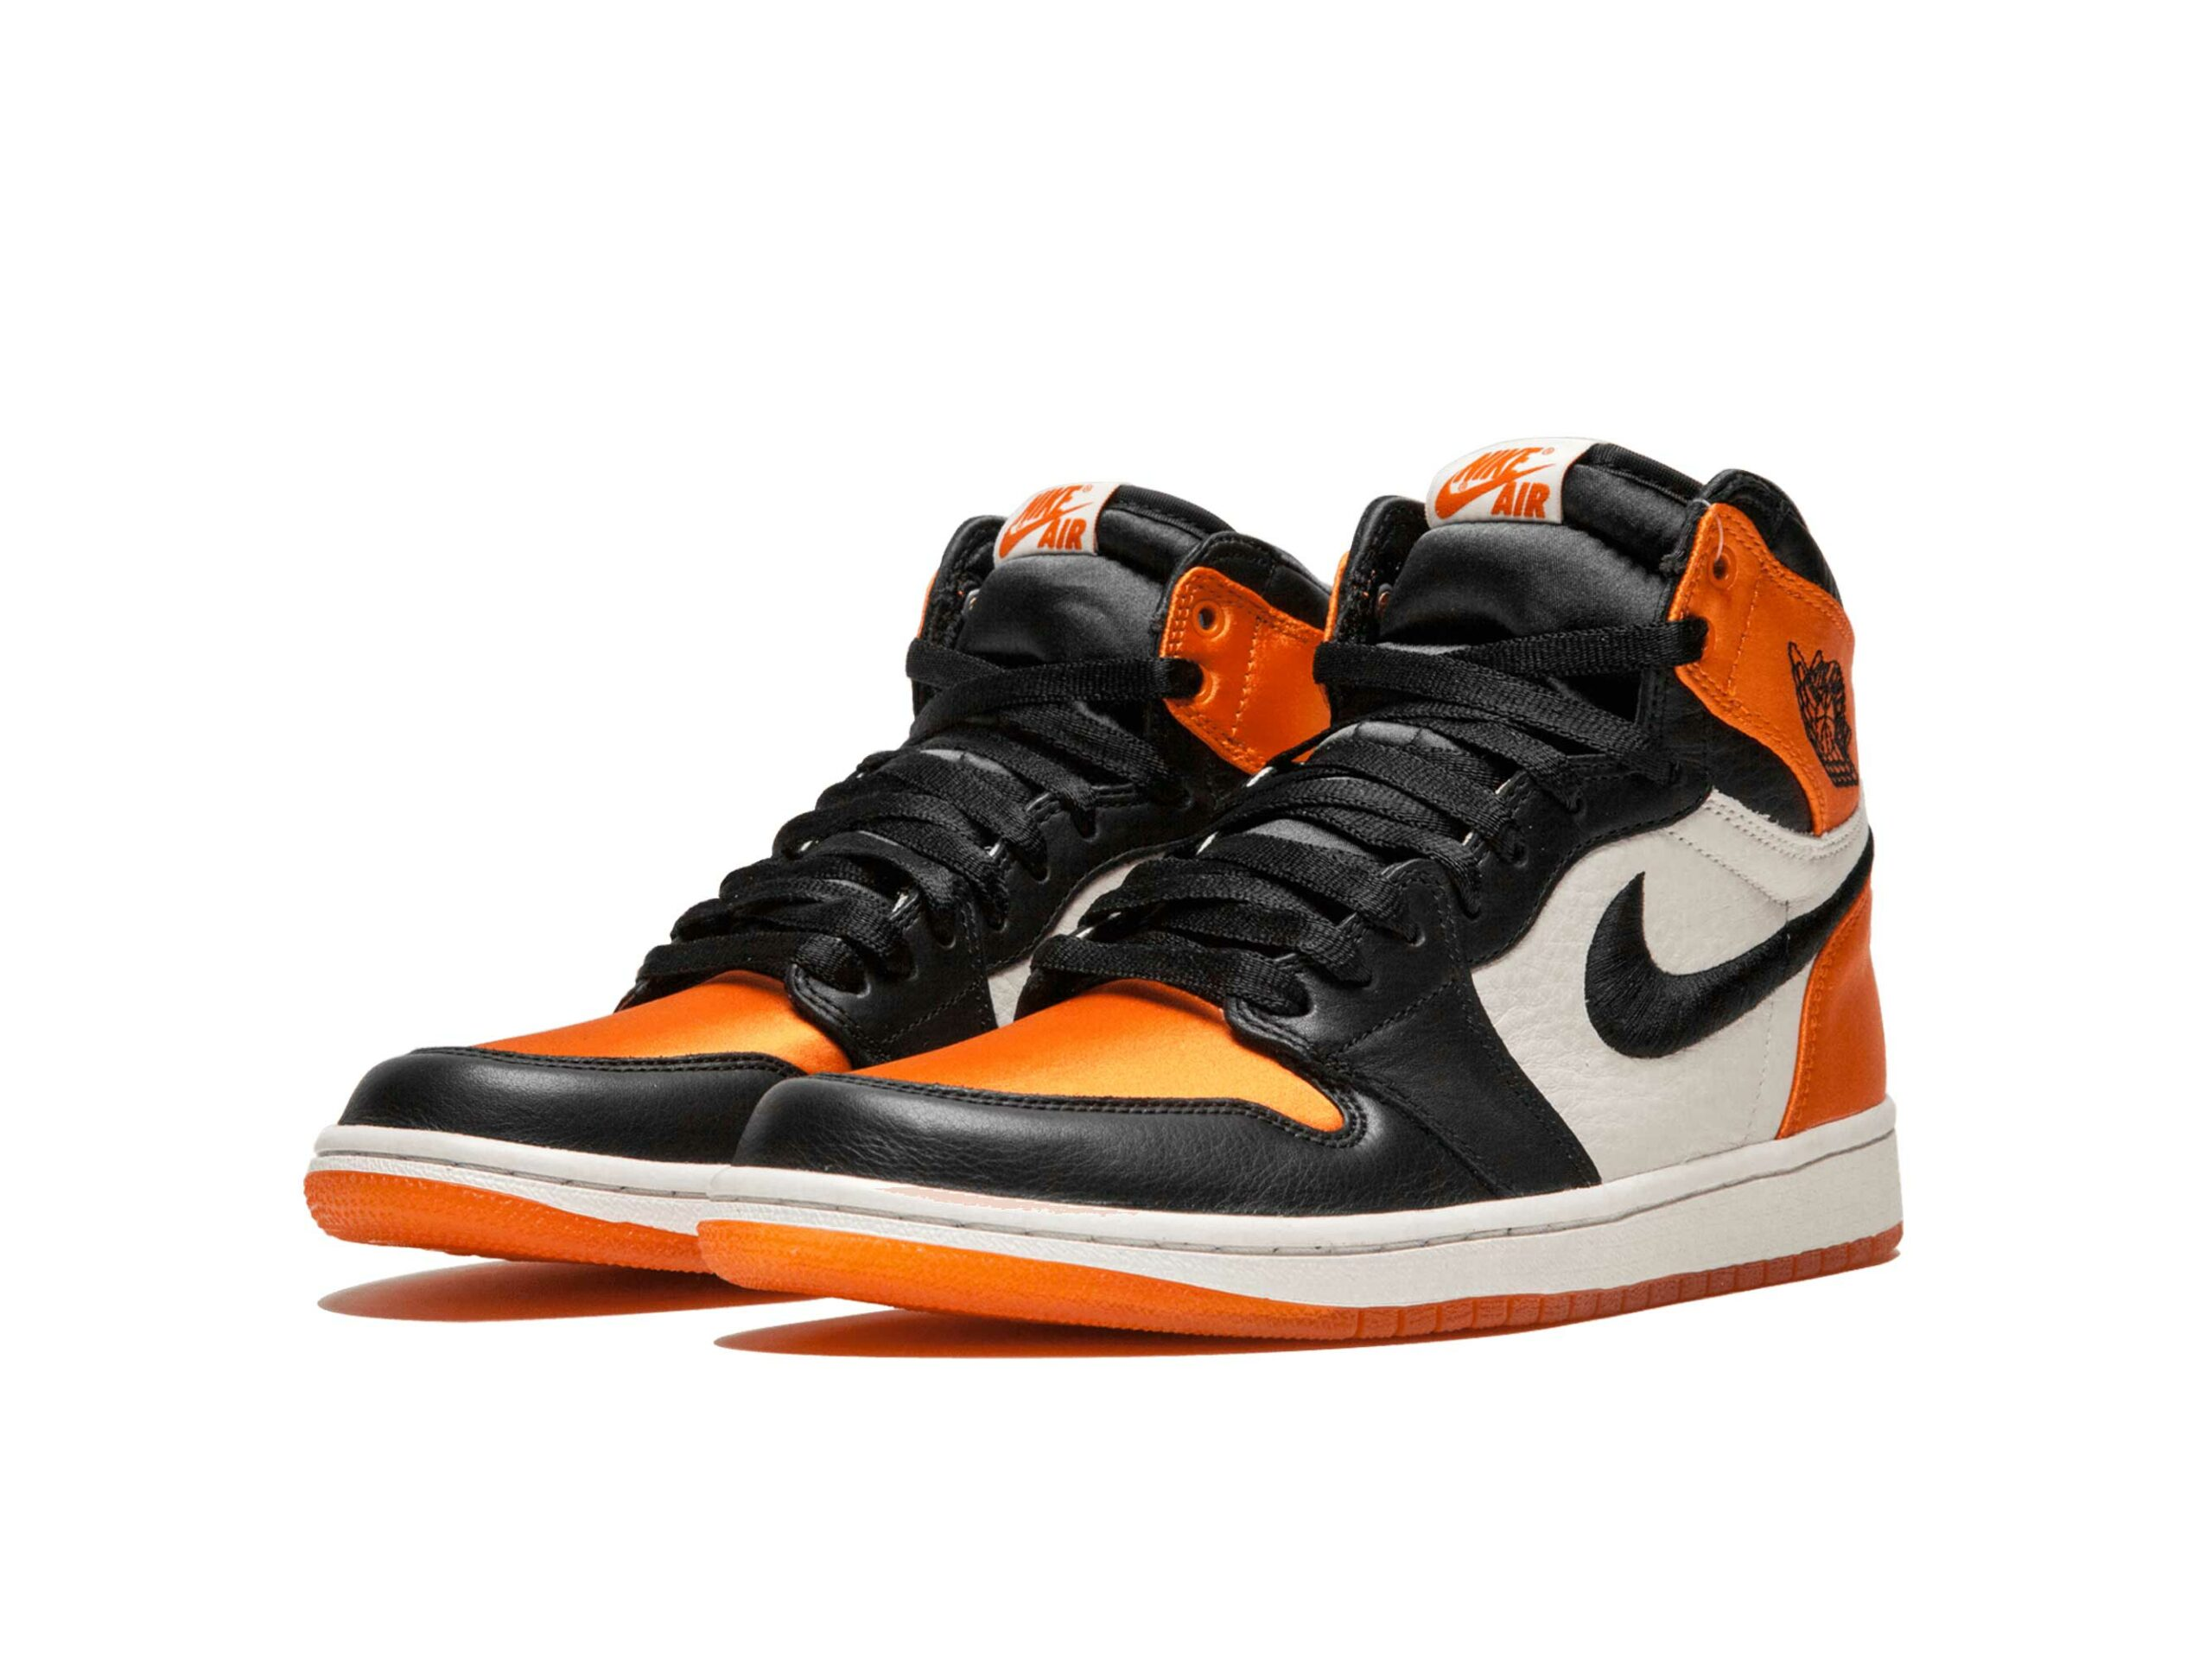 nike air Jordan 1 satin shattered backboard black orange AV3725_010 купить